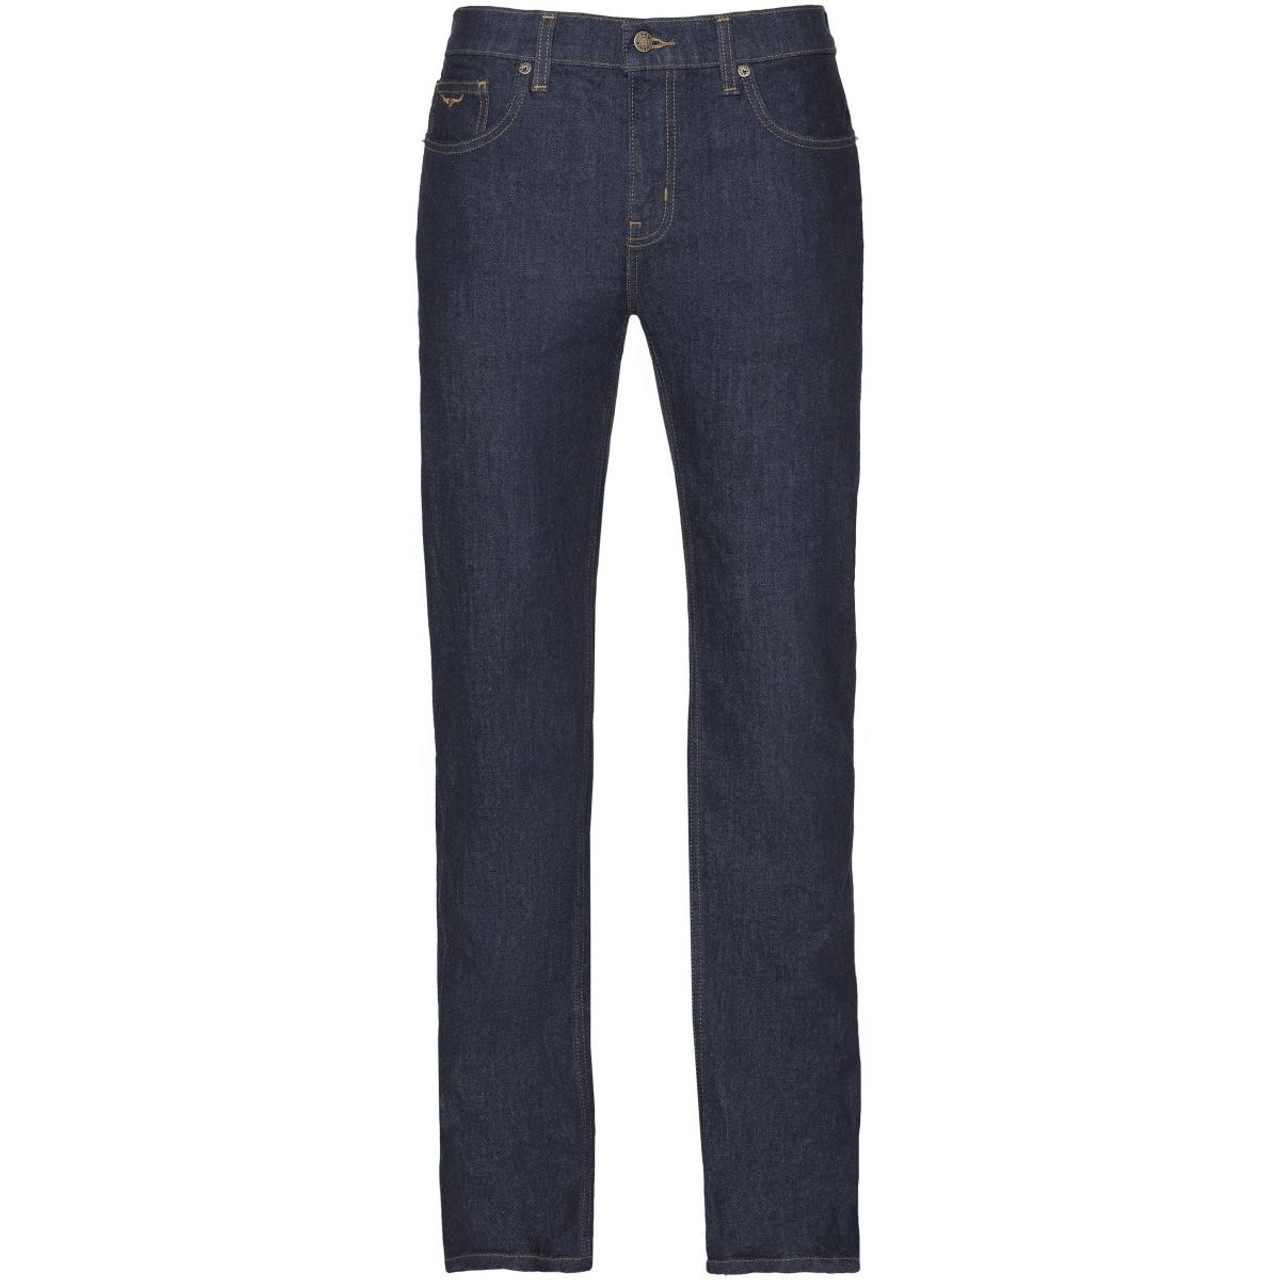 R.M. Williams Mens Ramco Denim Jeans